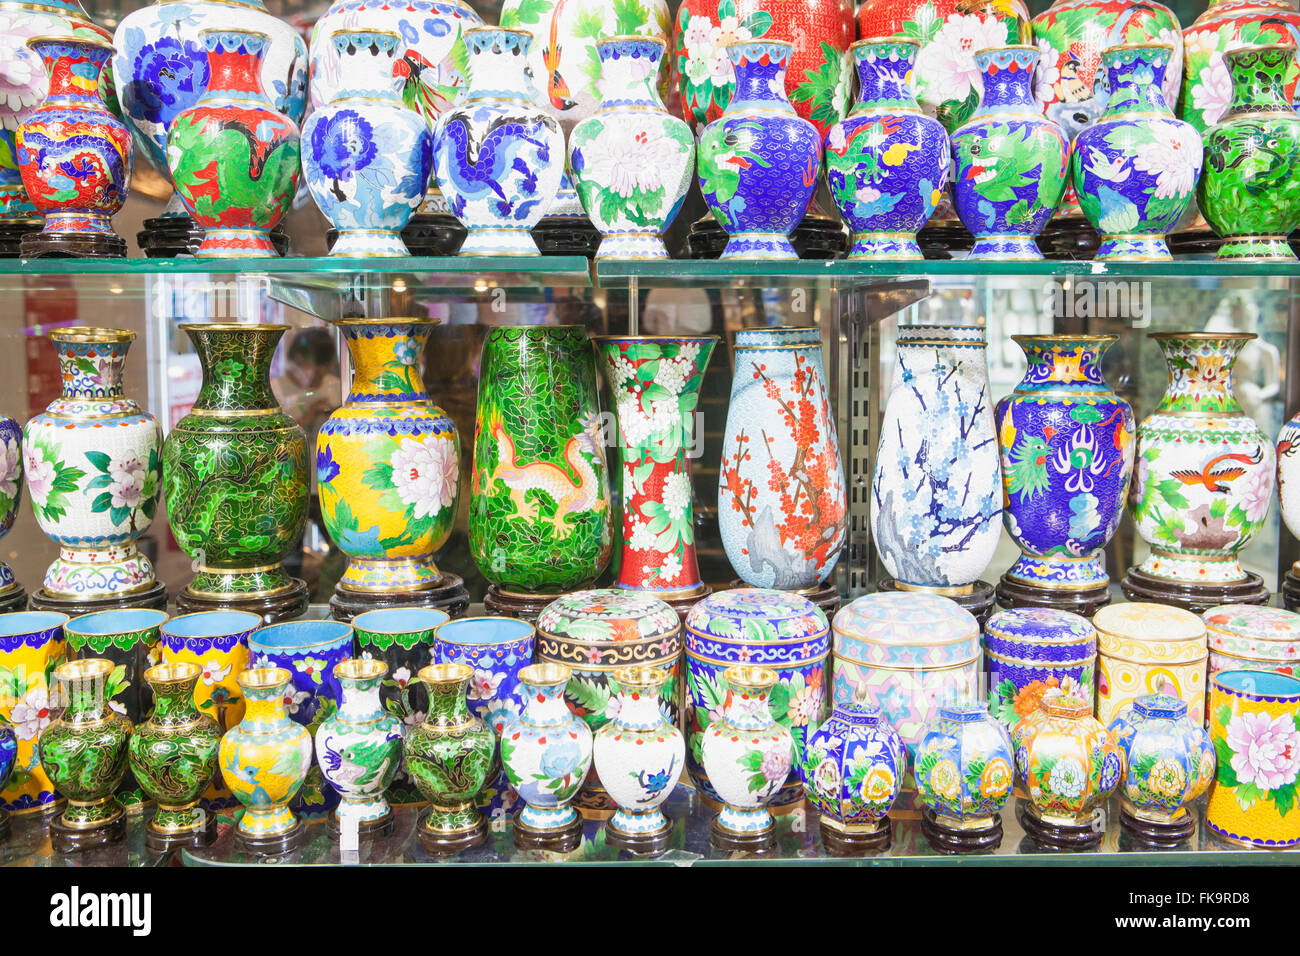 cloisonne jars and vases in a shopping mall, Beijing, China - Stock Image